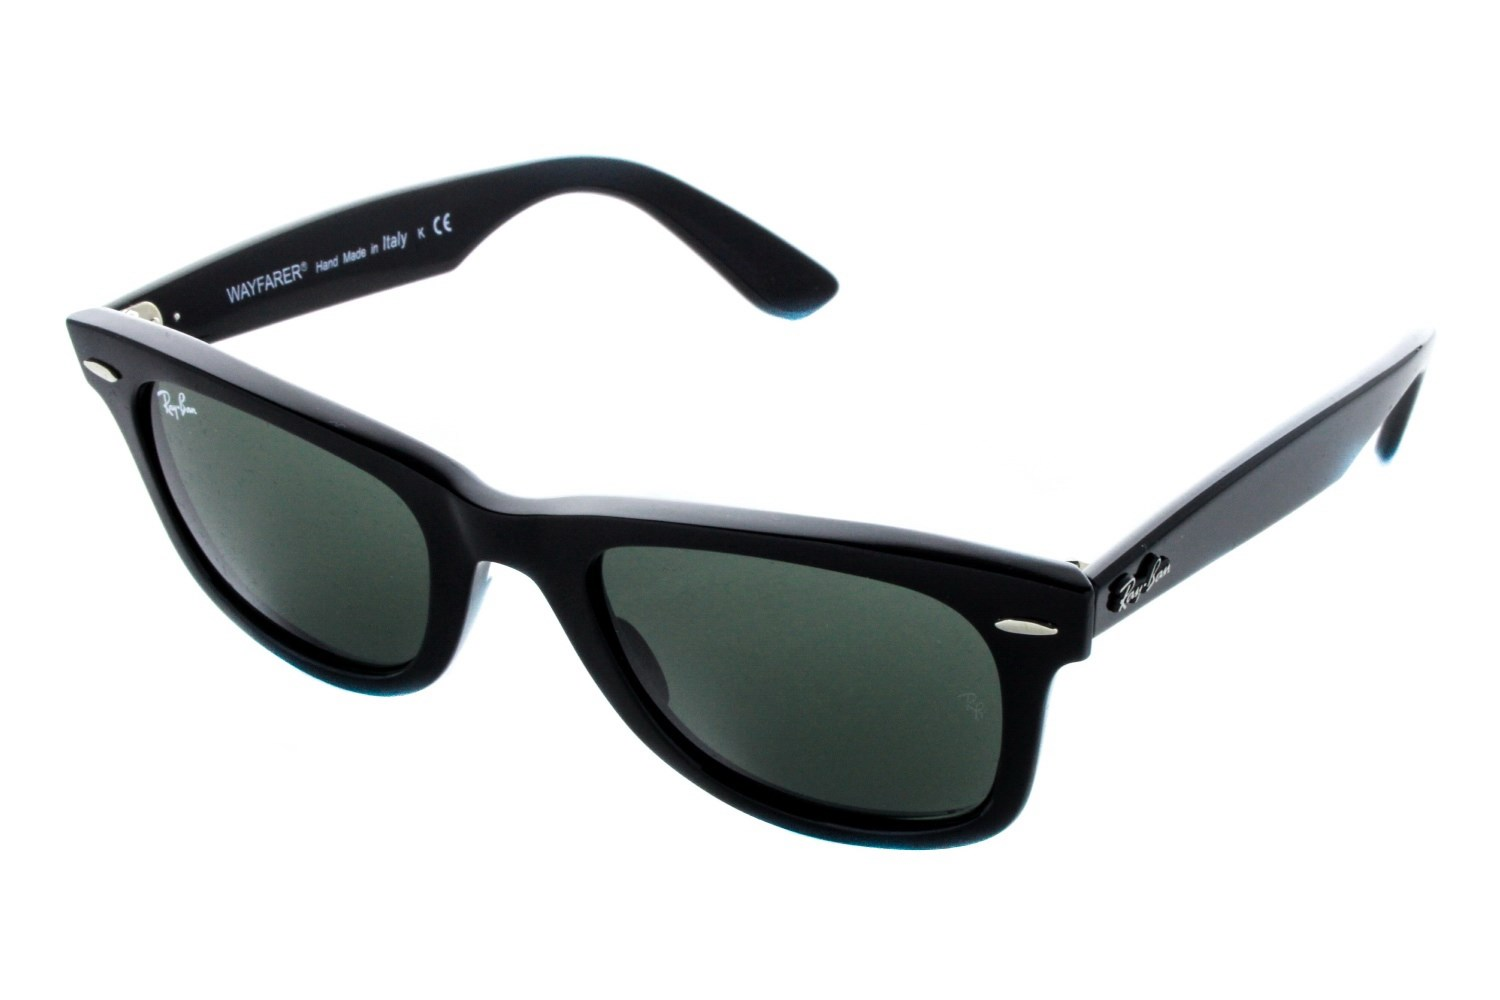 cheap online sunglasses  ray-ban online